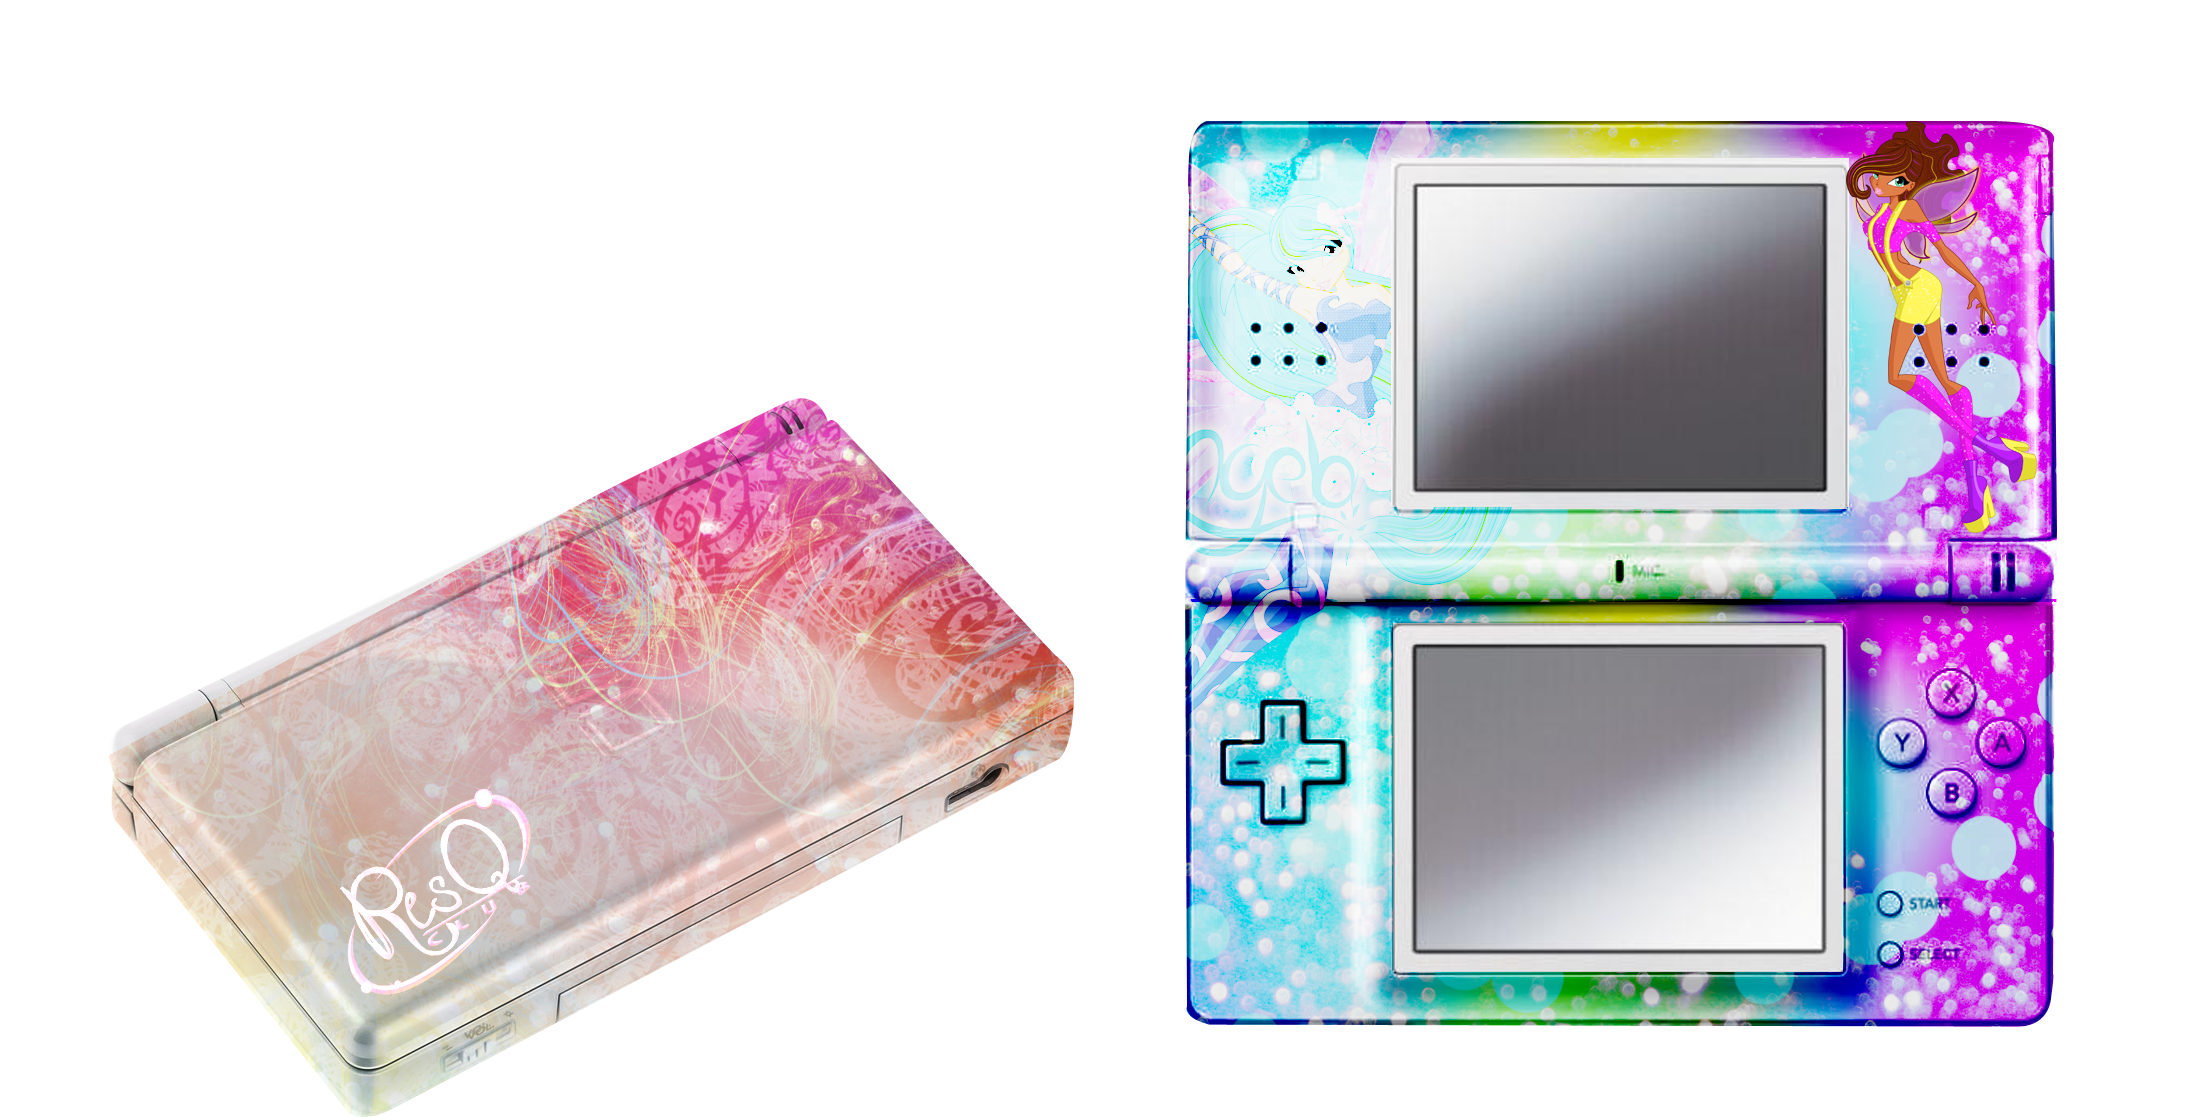 ResQ club Nintendo ds by Dessindu43